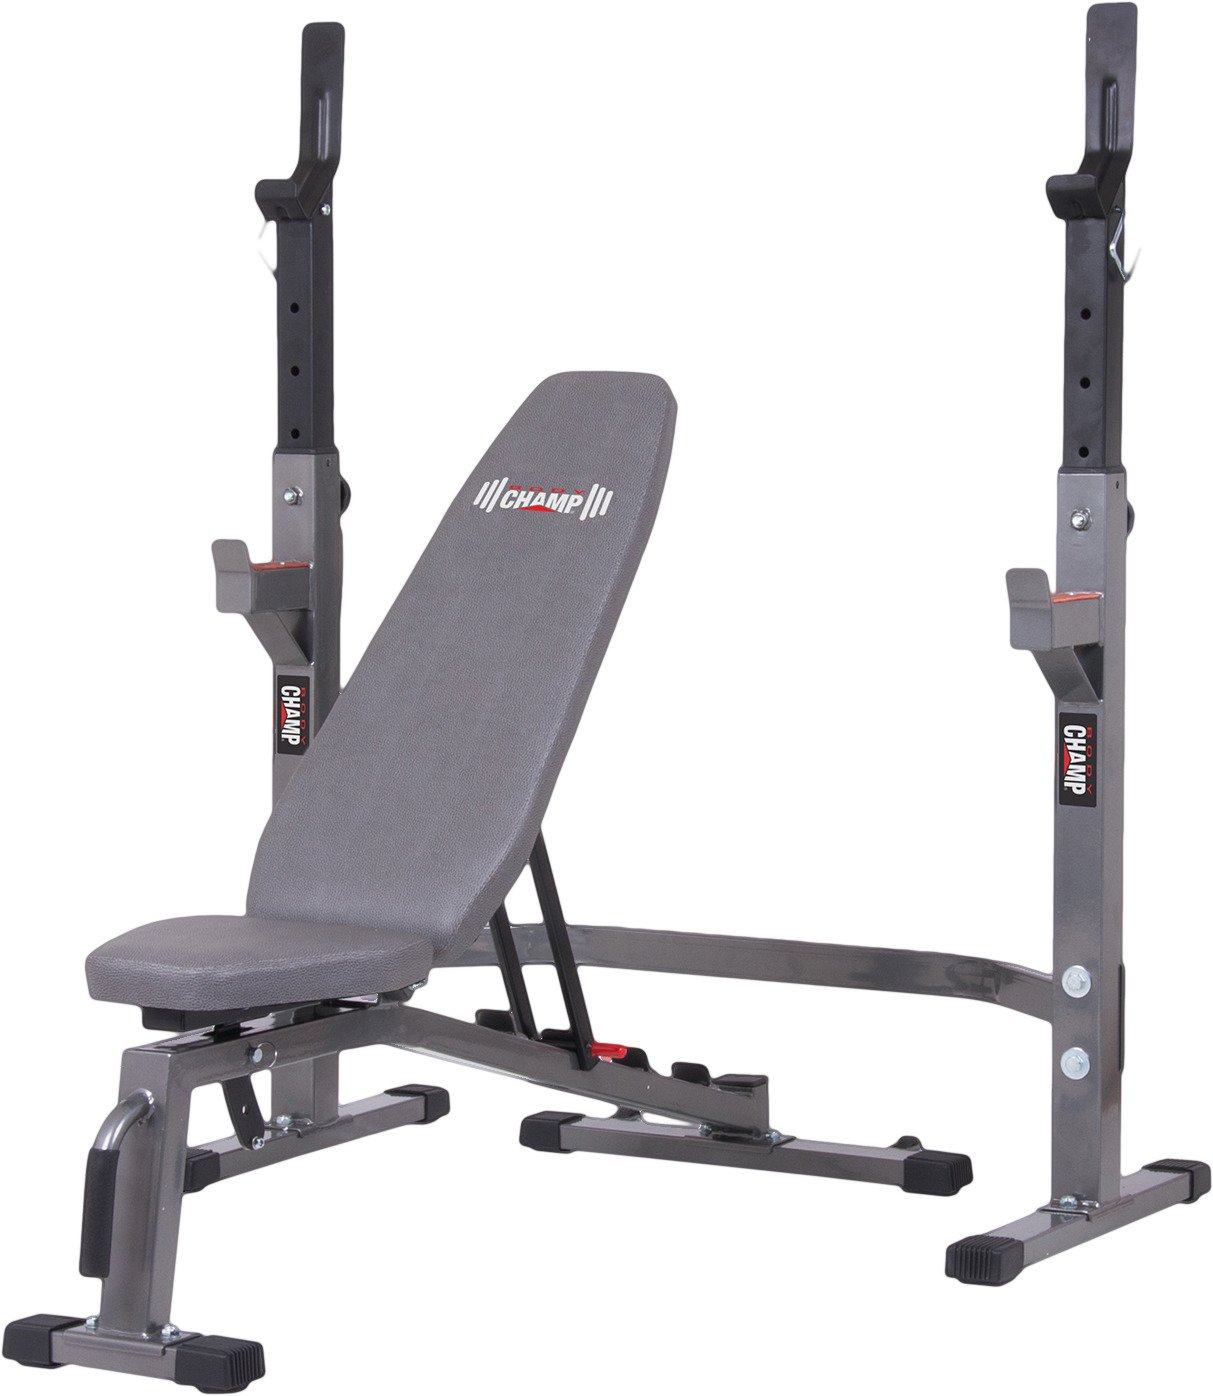 Weight Benches Bench Set For Sale Mesmerizing With Ebay: Workout Benches, Weight Sets